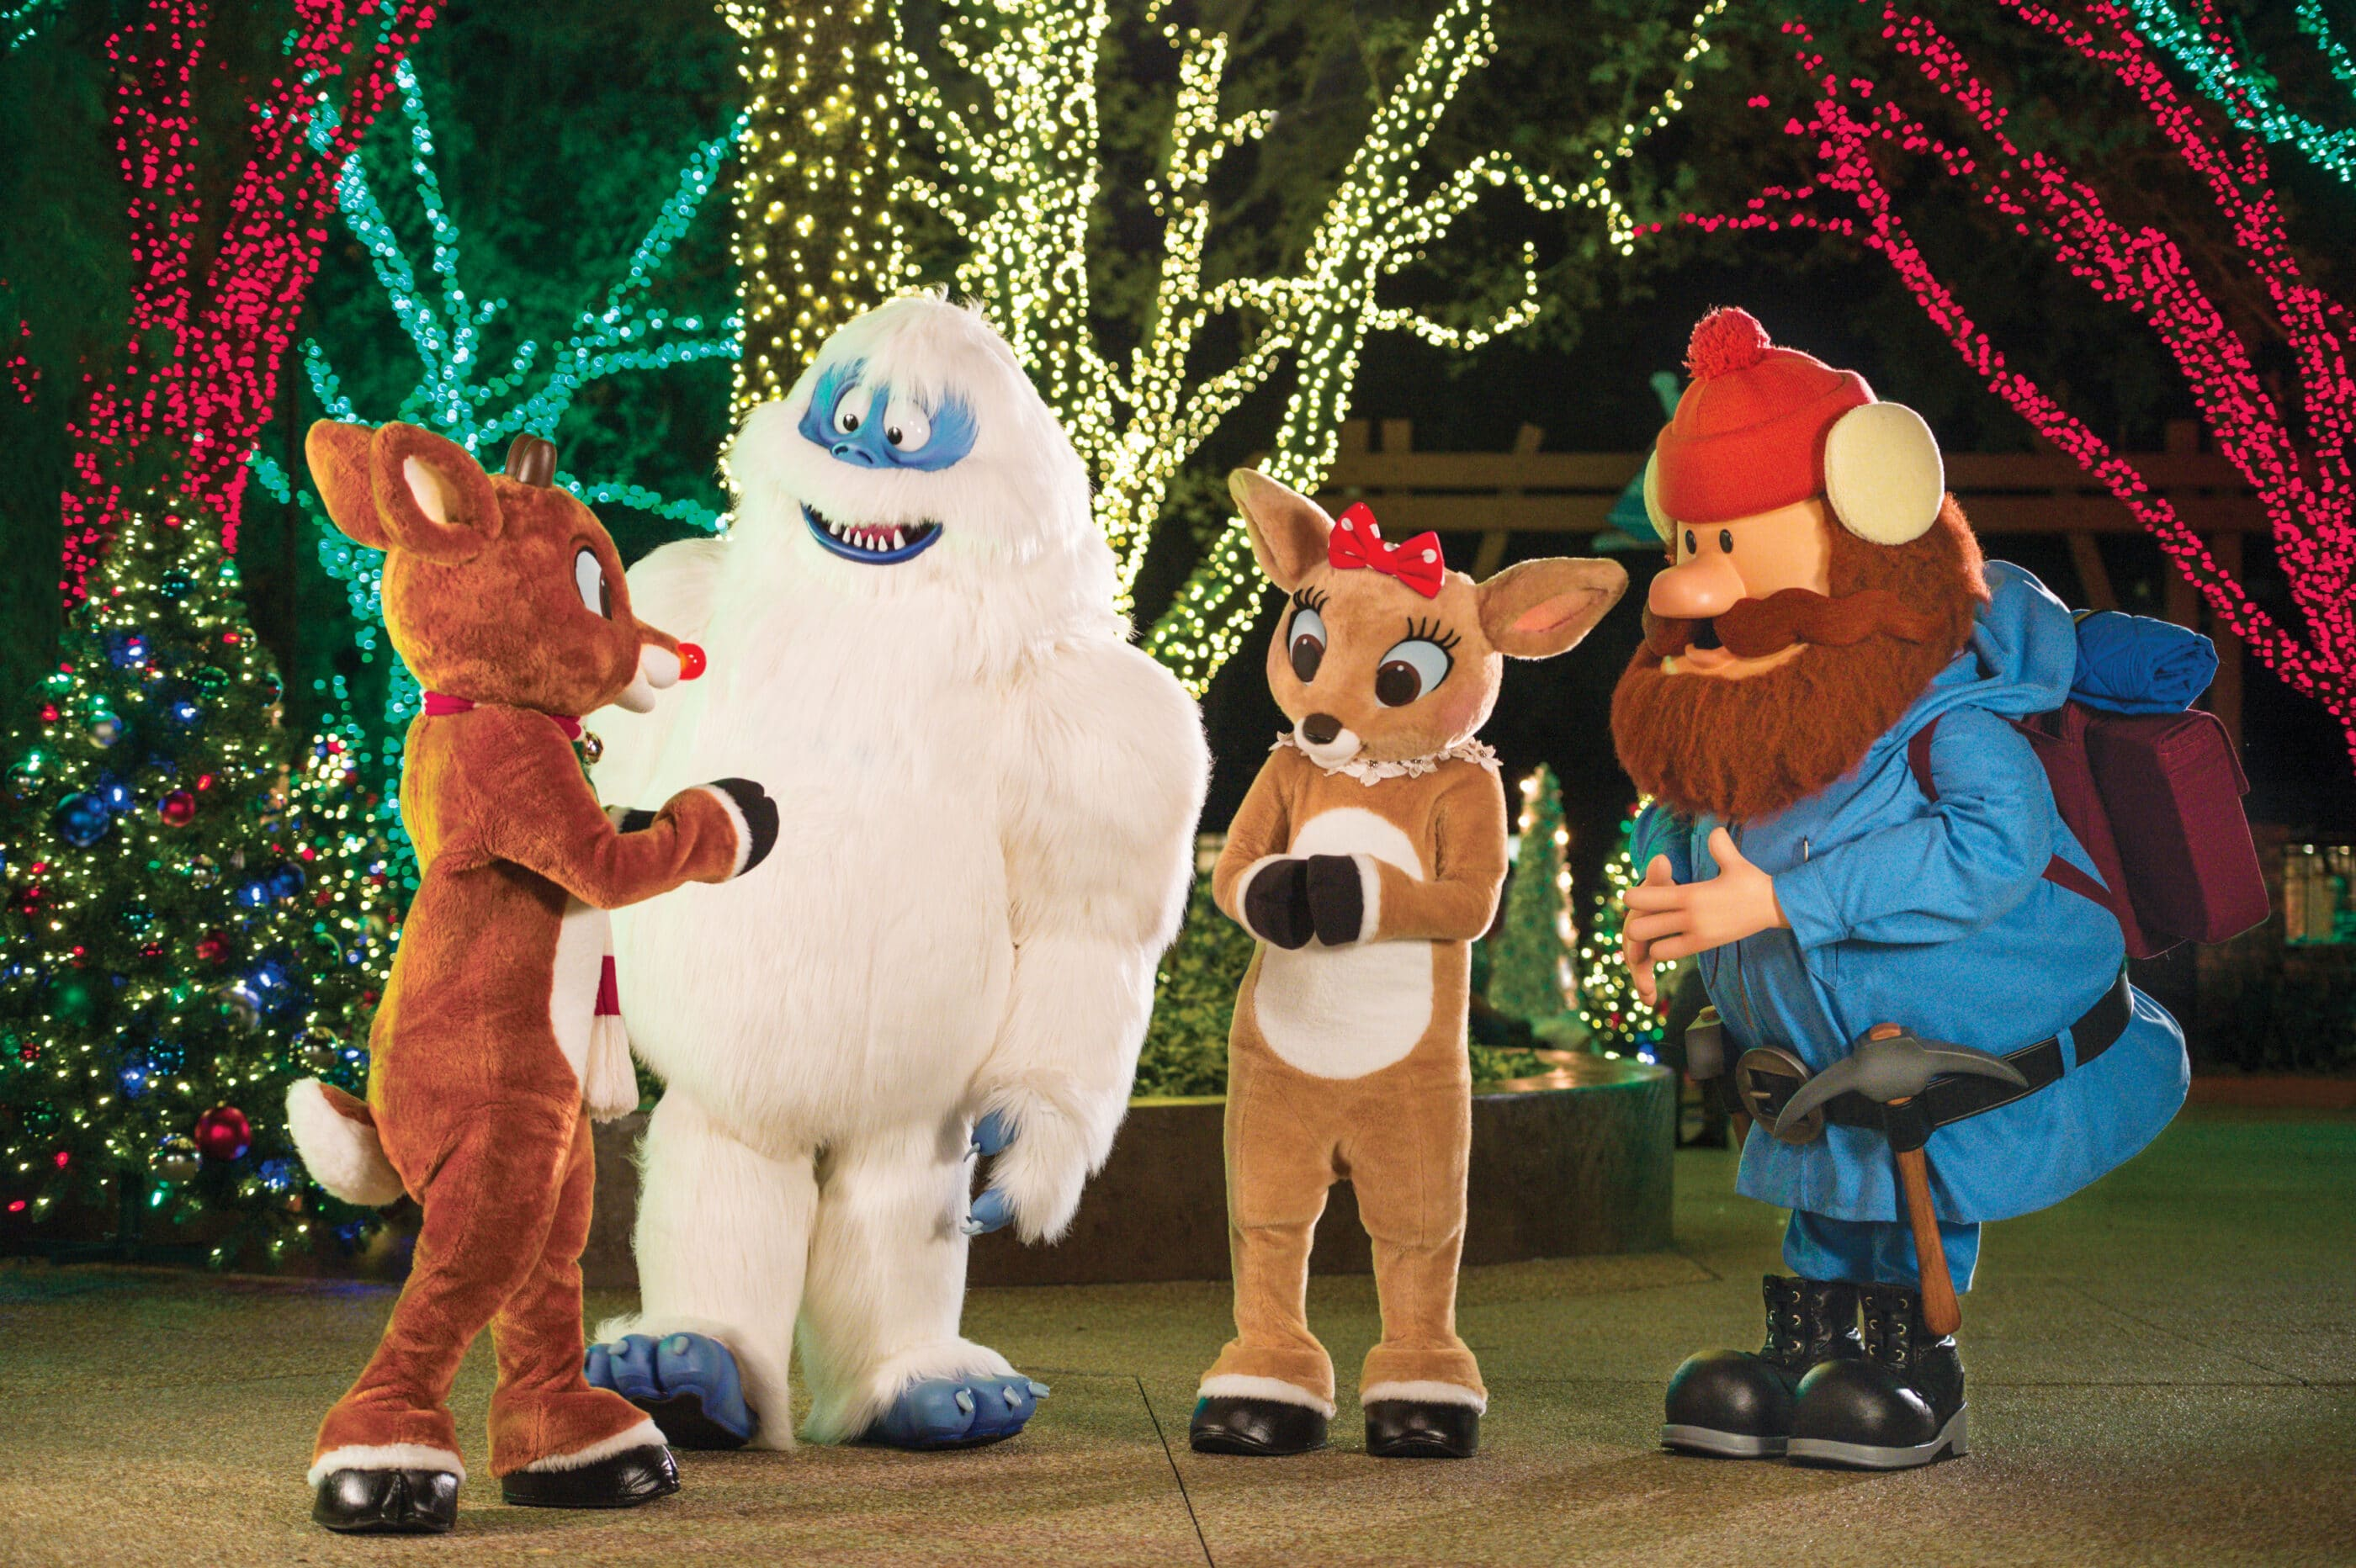 Rudolph and friends in front of holiday decor at SeaWorld San Diego's Christmas Celebration.